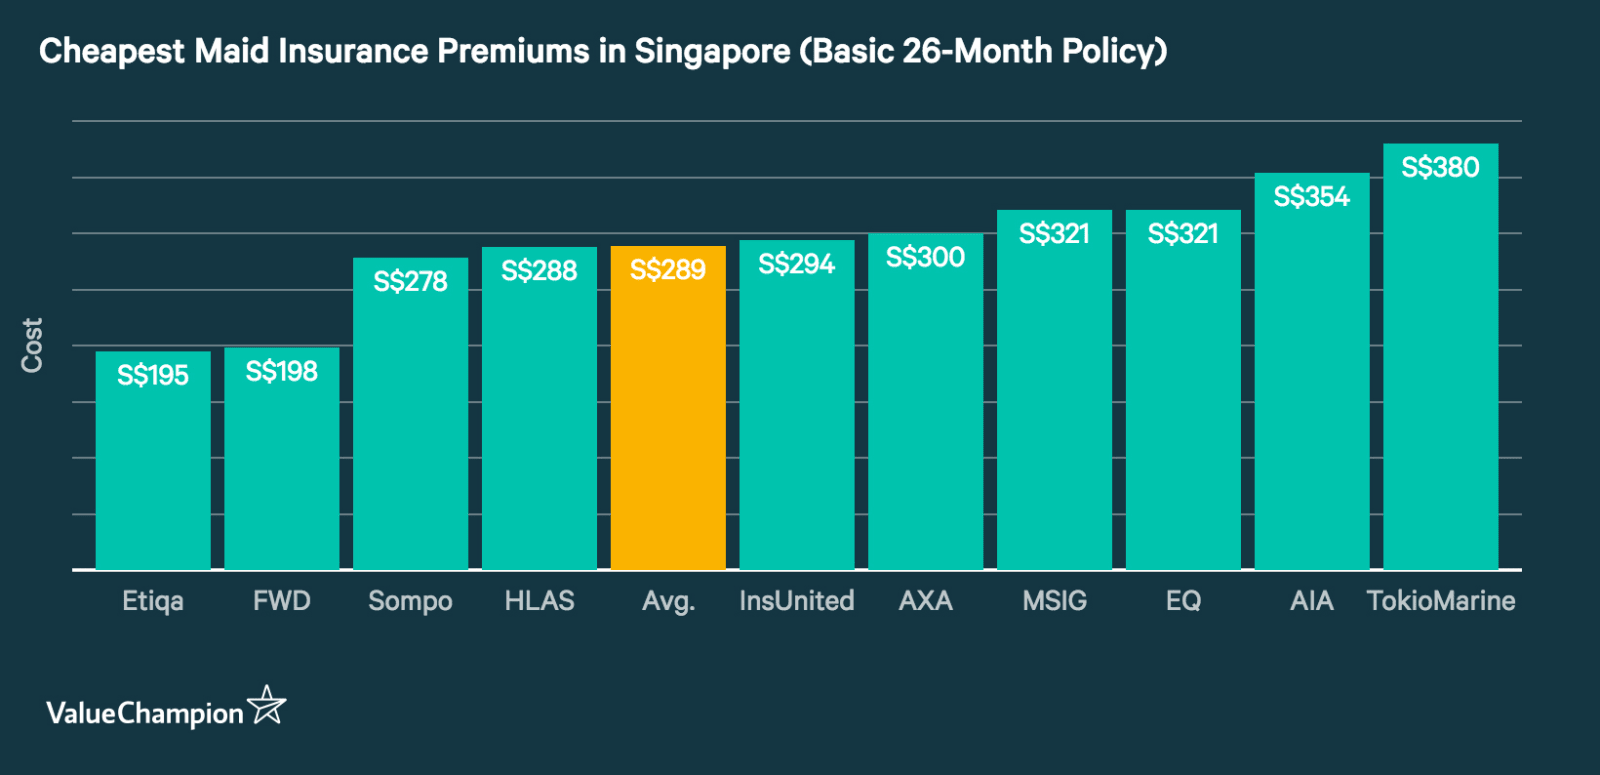 This graph shows the cheapest maid insurance policies currently available in Singapore